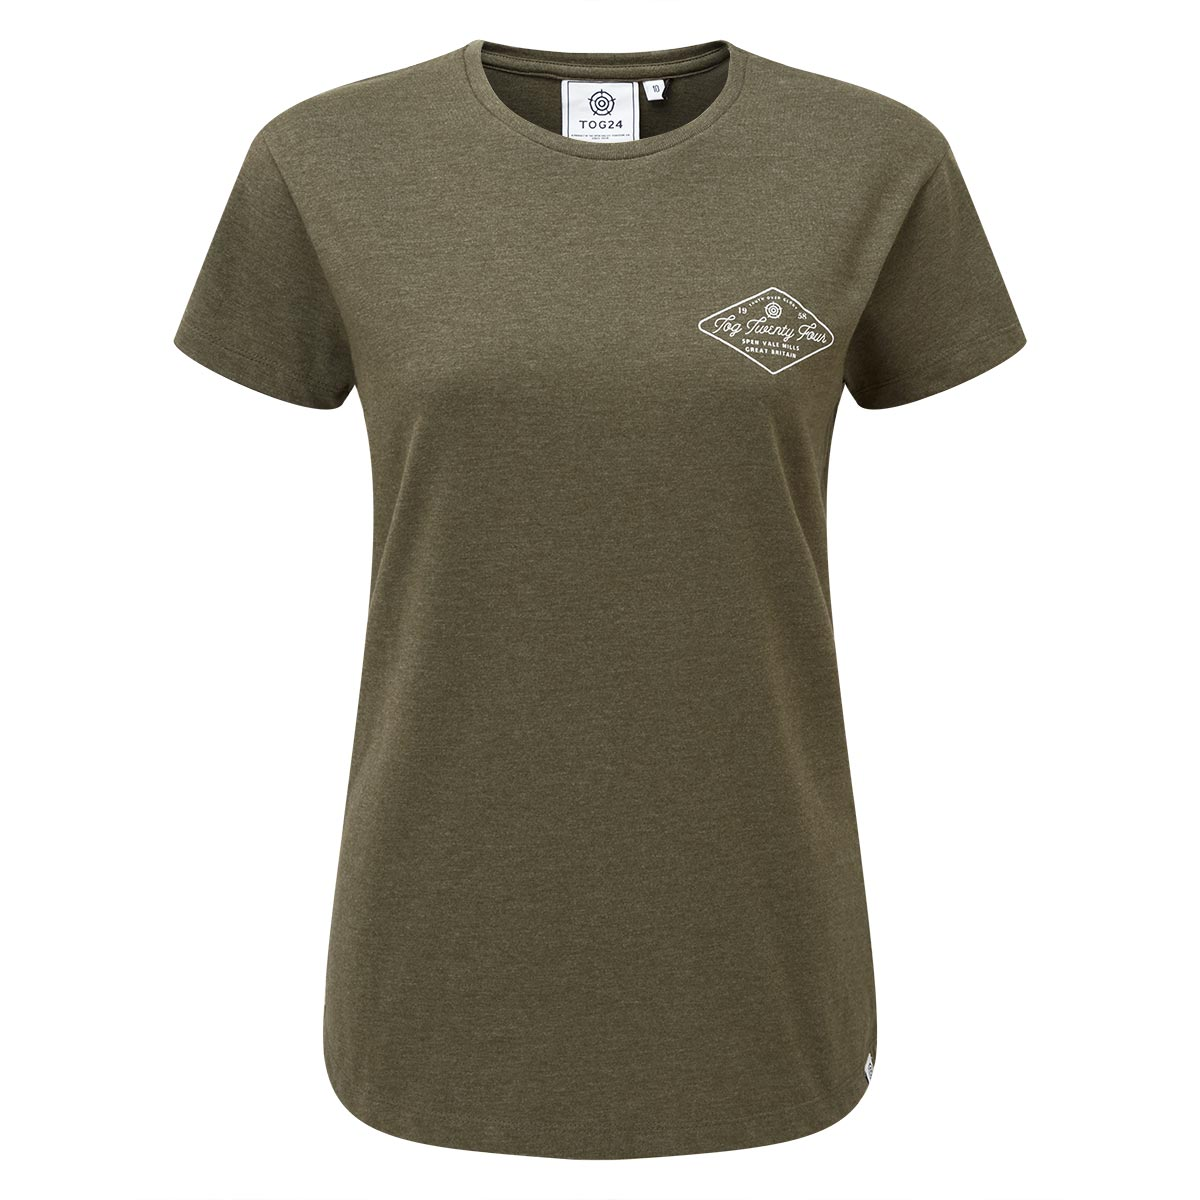 Harome Womens Graphic T-Shirt Diamond - Ivy Green Marl